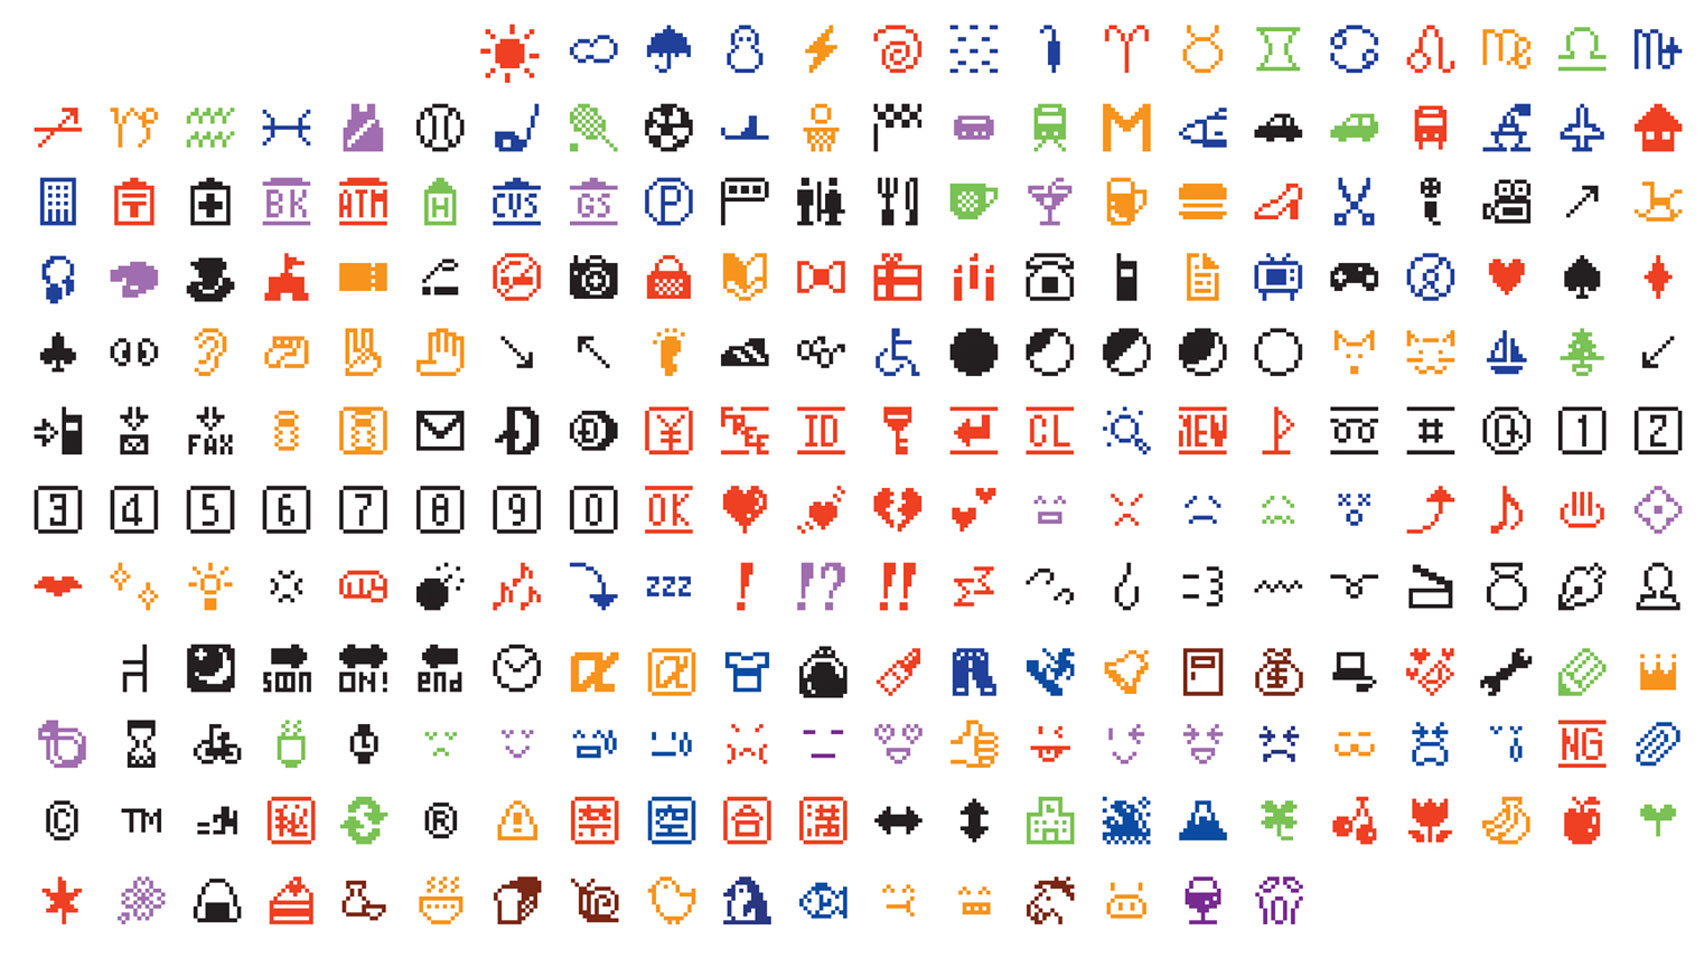 Emoji icons designed by Japanese artist Shigetaka Kurita in 1999